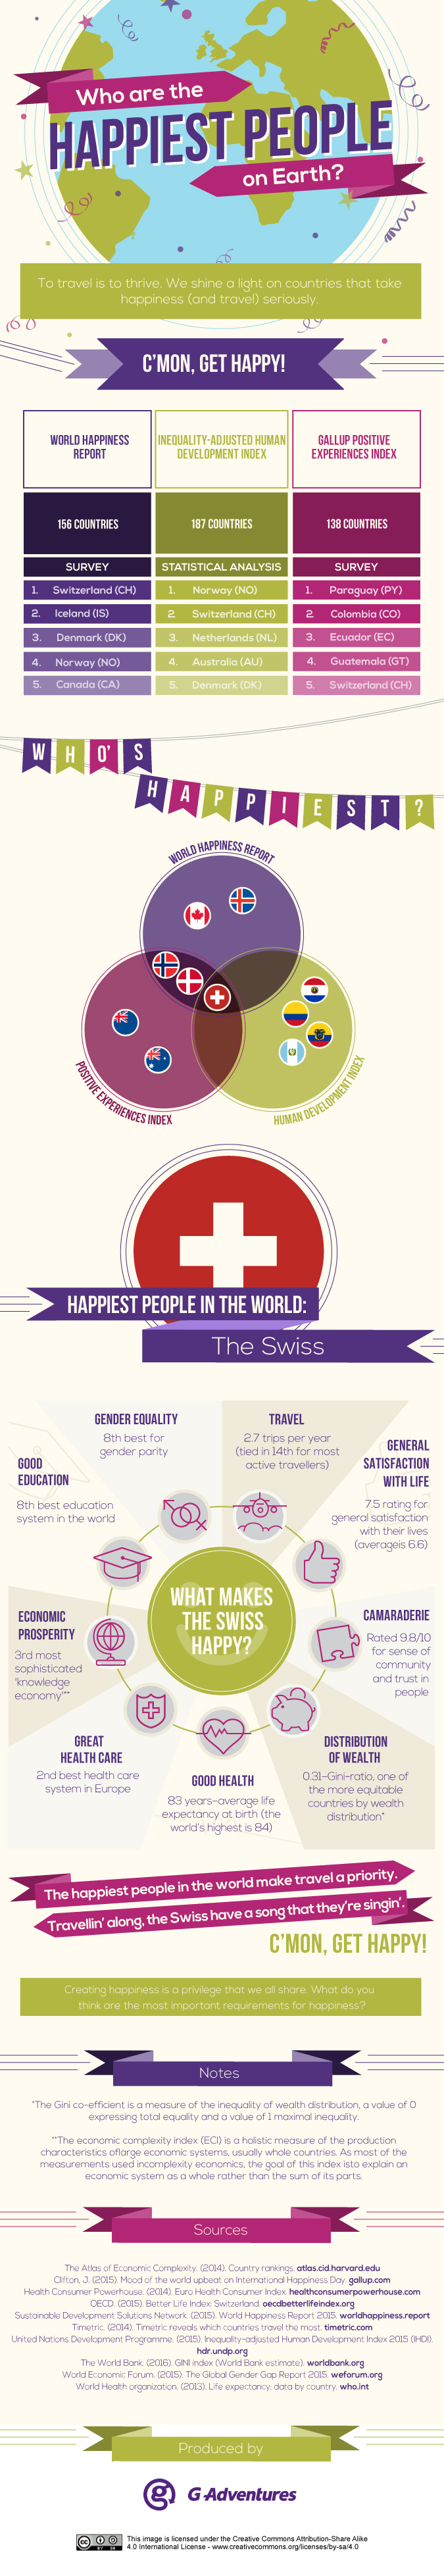 Infographic on the happiest people on earth.